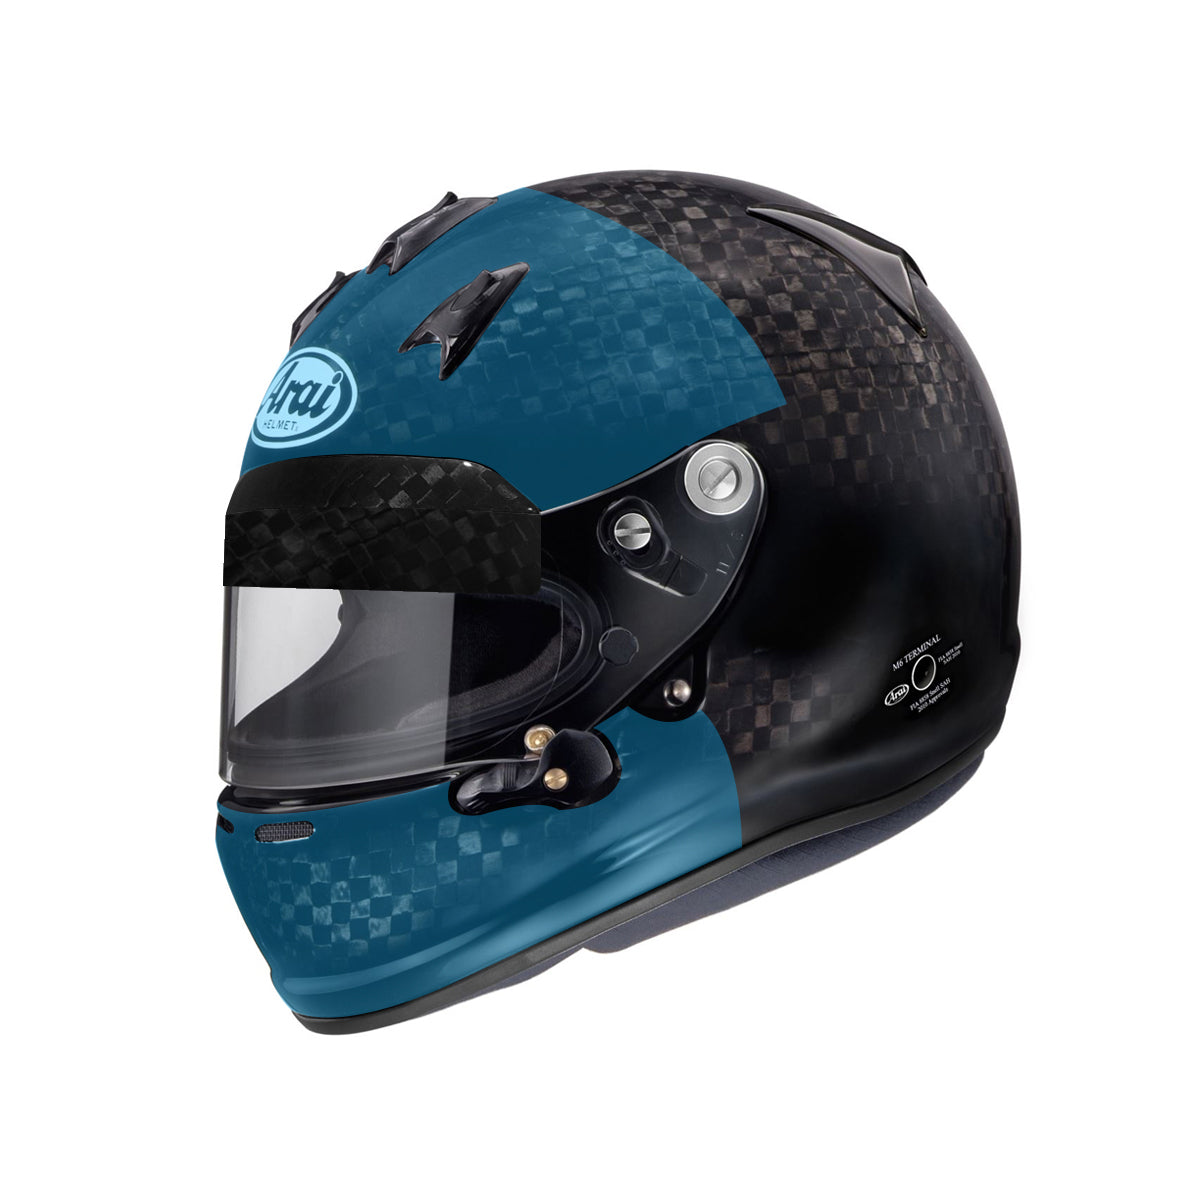 Racelite Designs Transparent Helmet Protection Kit Product View 1